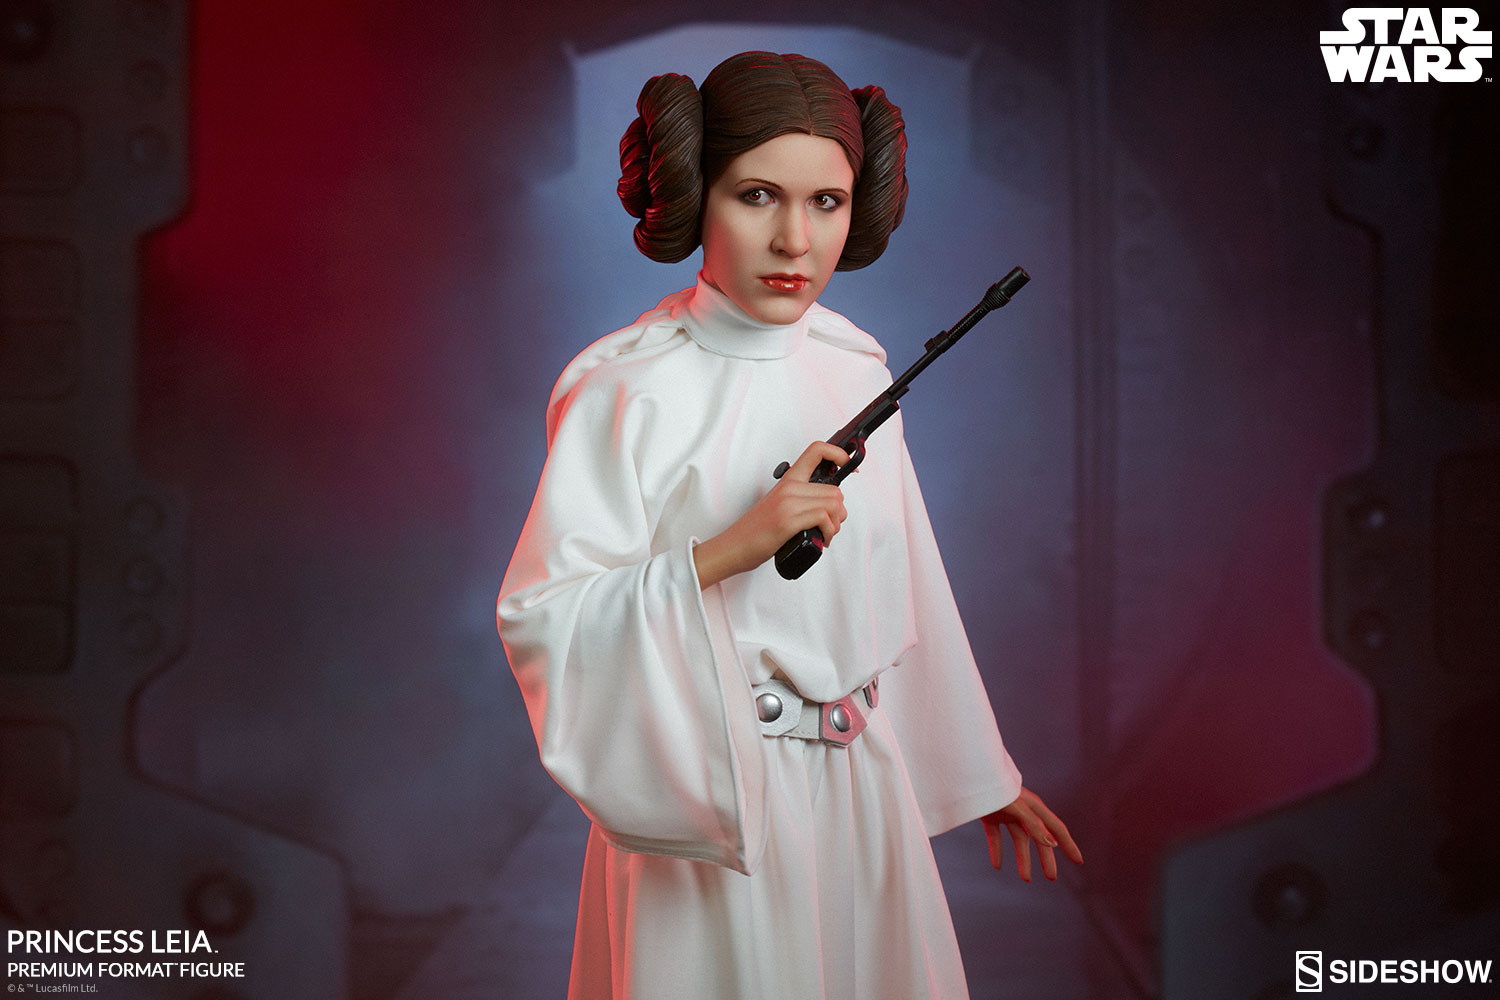 the princess leia premium format figure is a new hope for. Black Bedroom Furniture Sets. Home Design Ideas